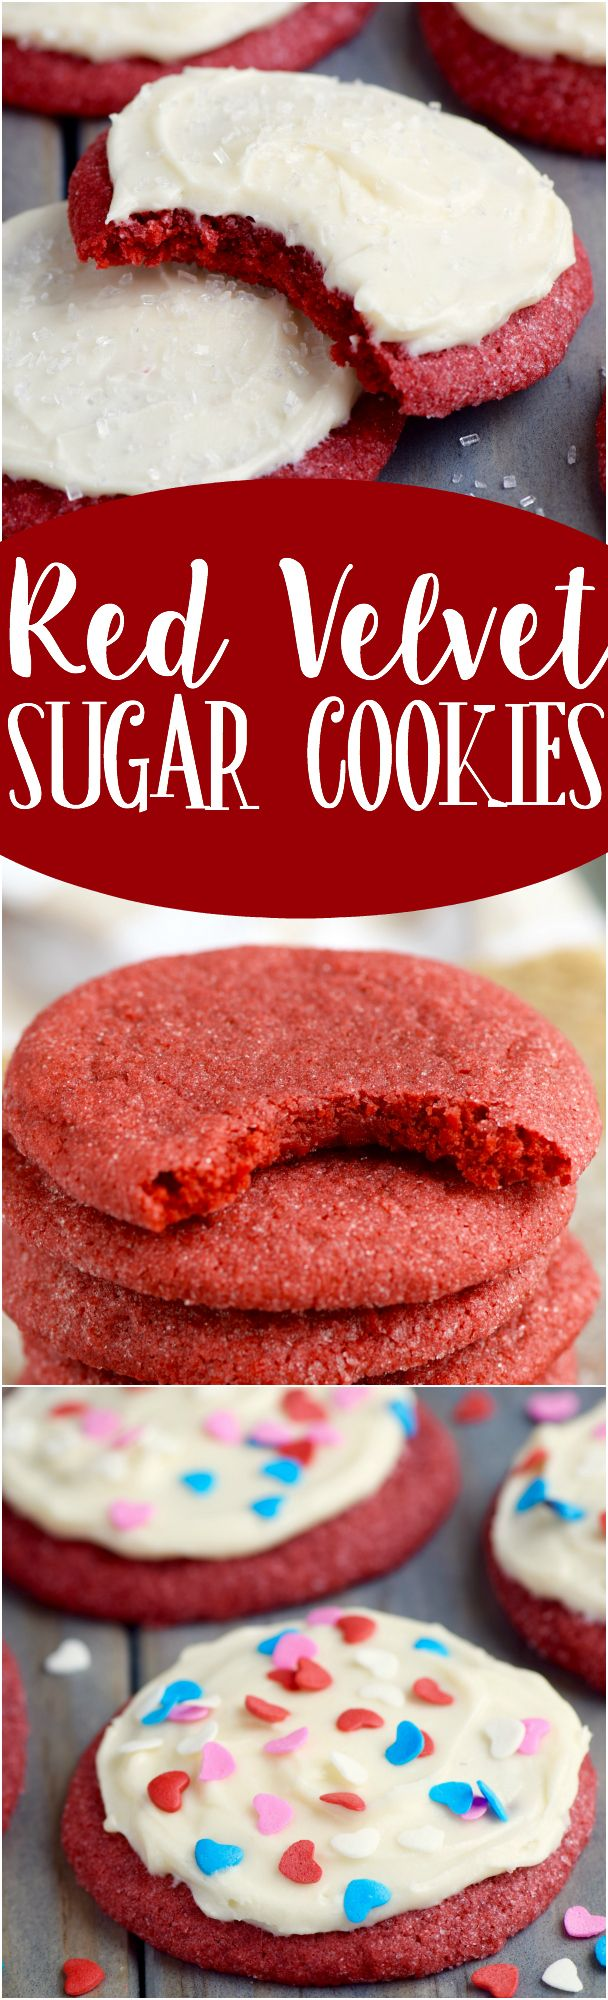 These Red Velvet Sugar Cookies are all the delicious flavor of red velvet, buttery soft, and crisp on the outside. Topped with some of the best cream cheese frosting! AMAZING!: